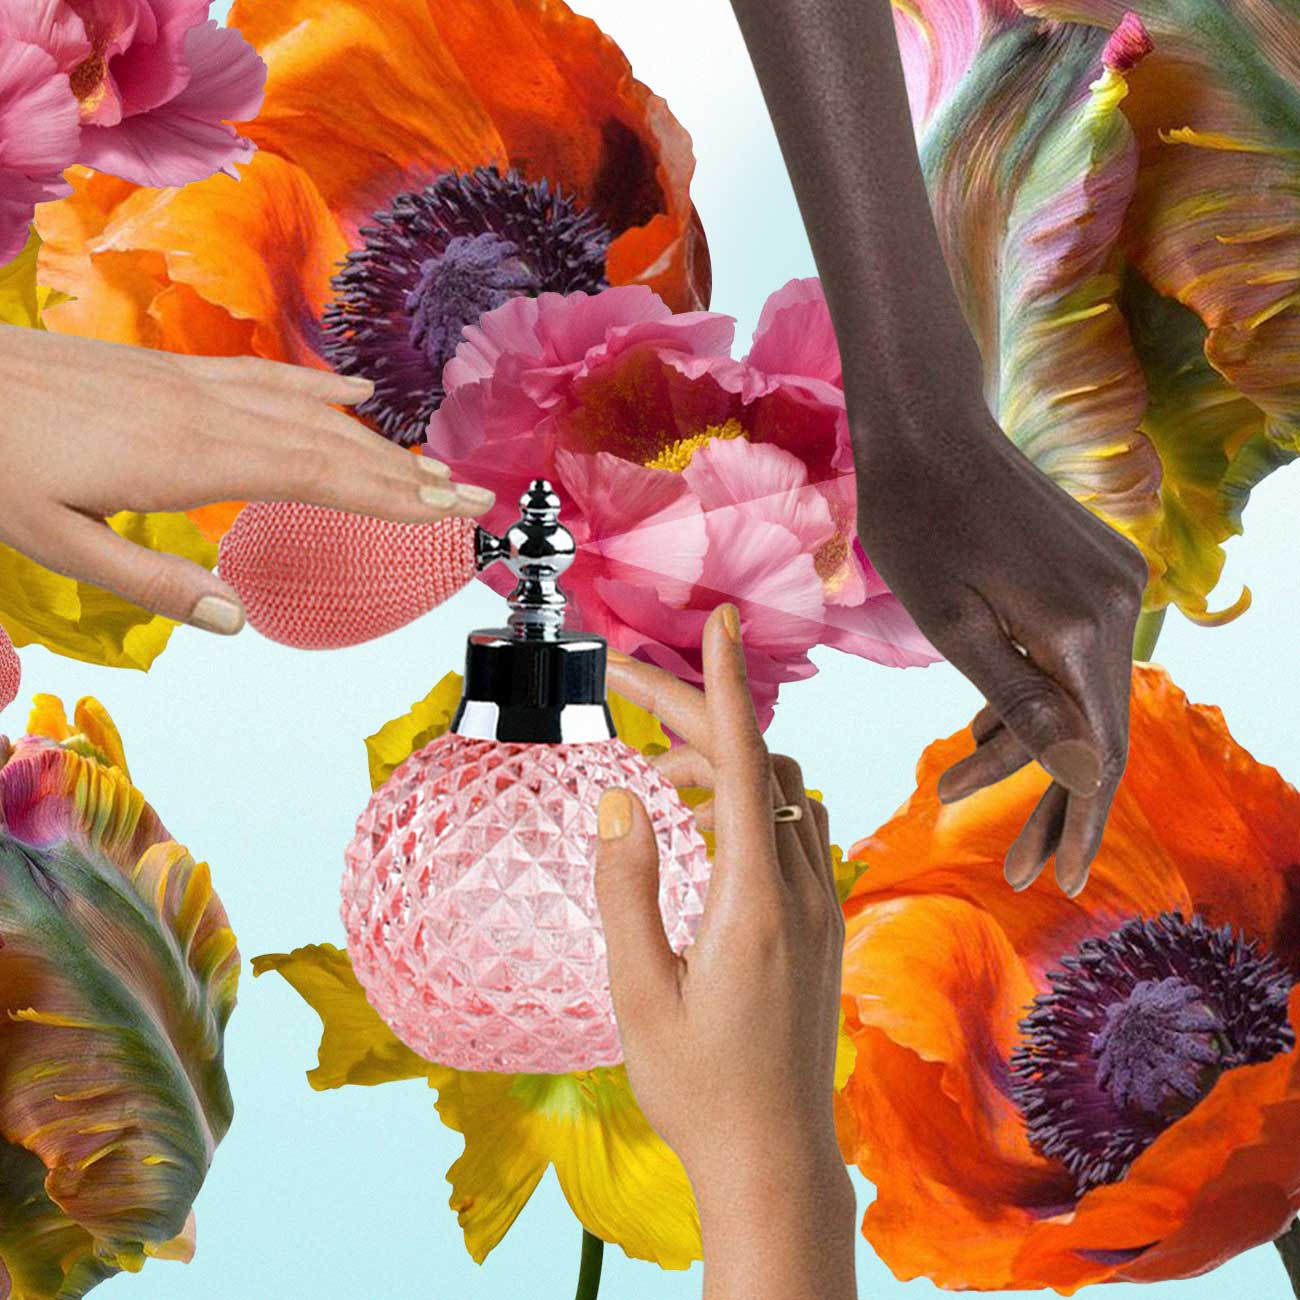 A collage of floral elements illustrating scents